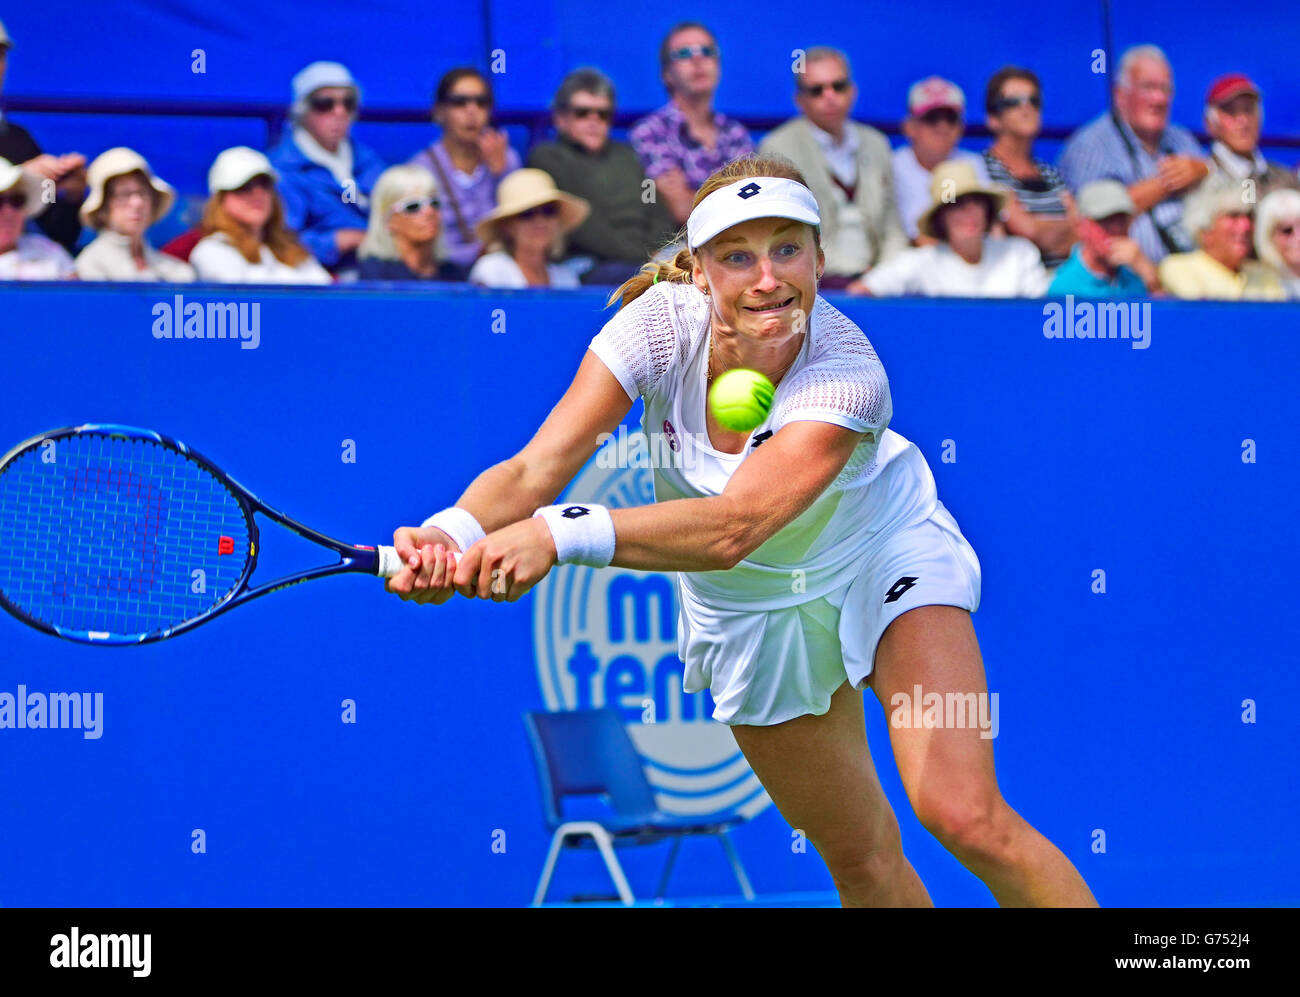 Ekaterina Makarova (Russia) at the Aegon International, Eastbourne, 21st June 2016. Stock Photo